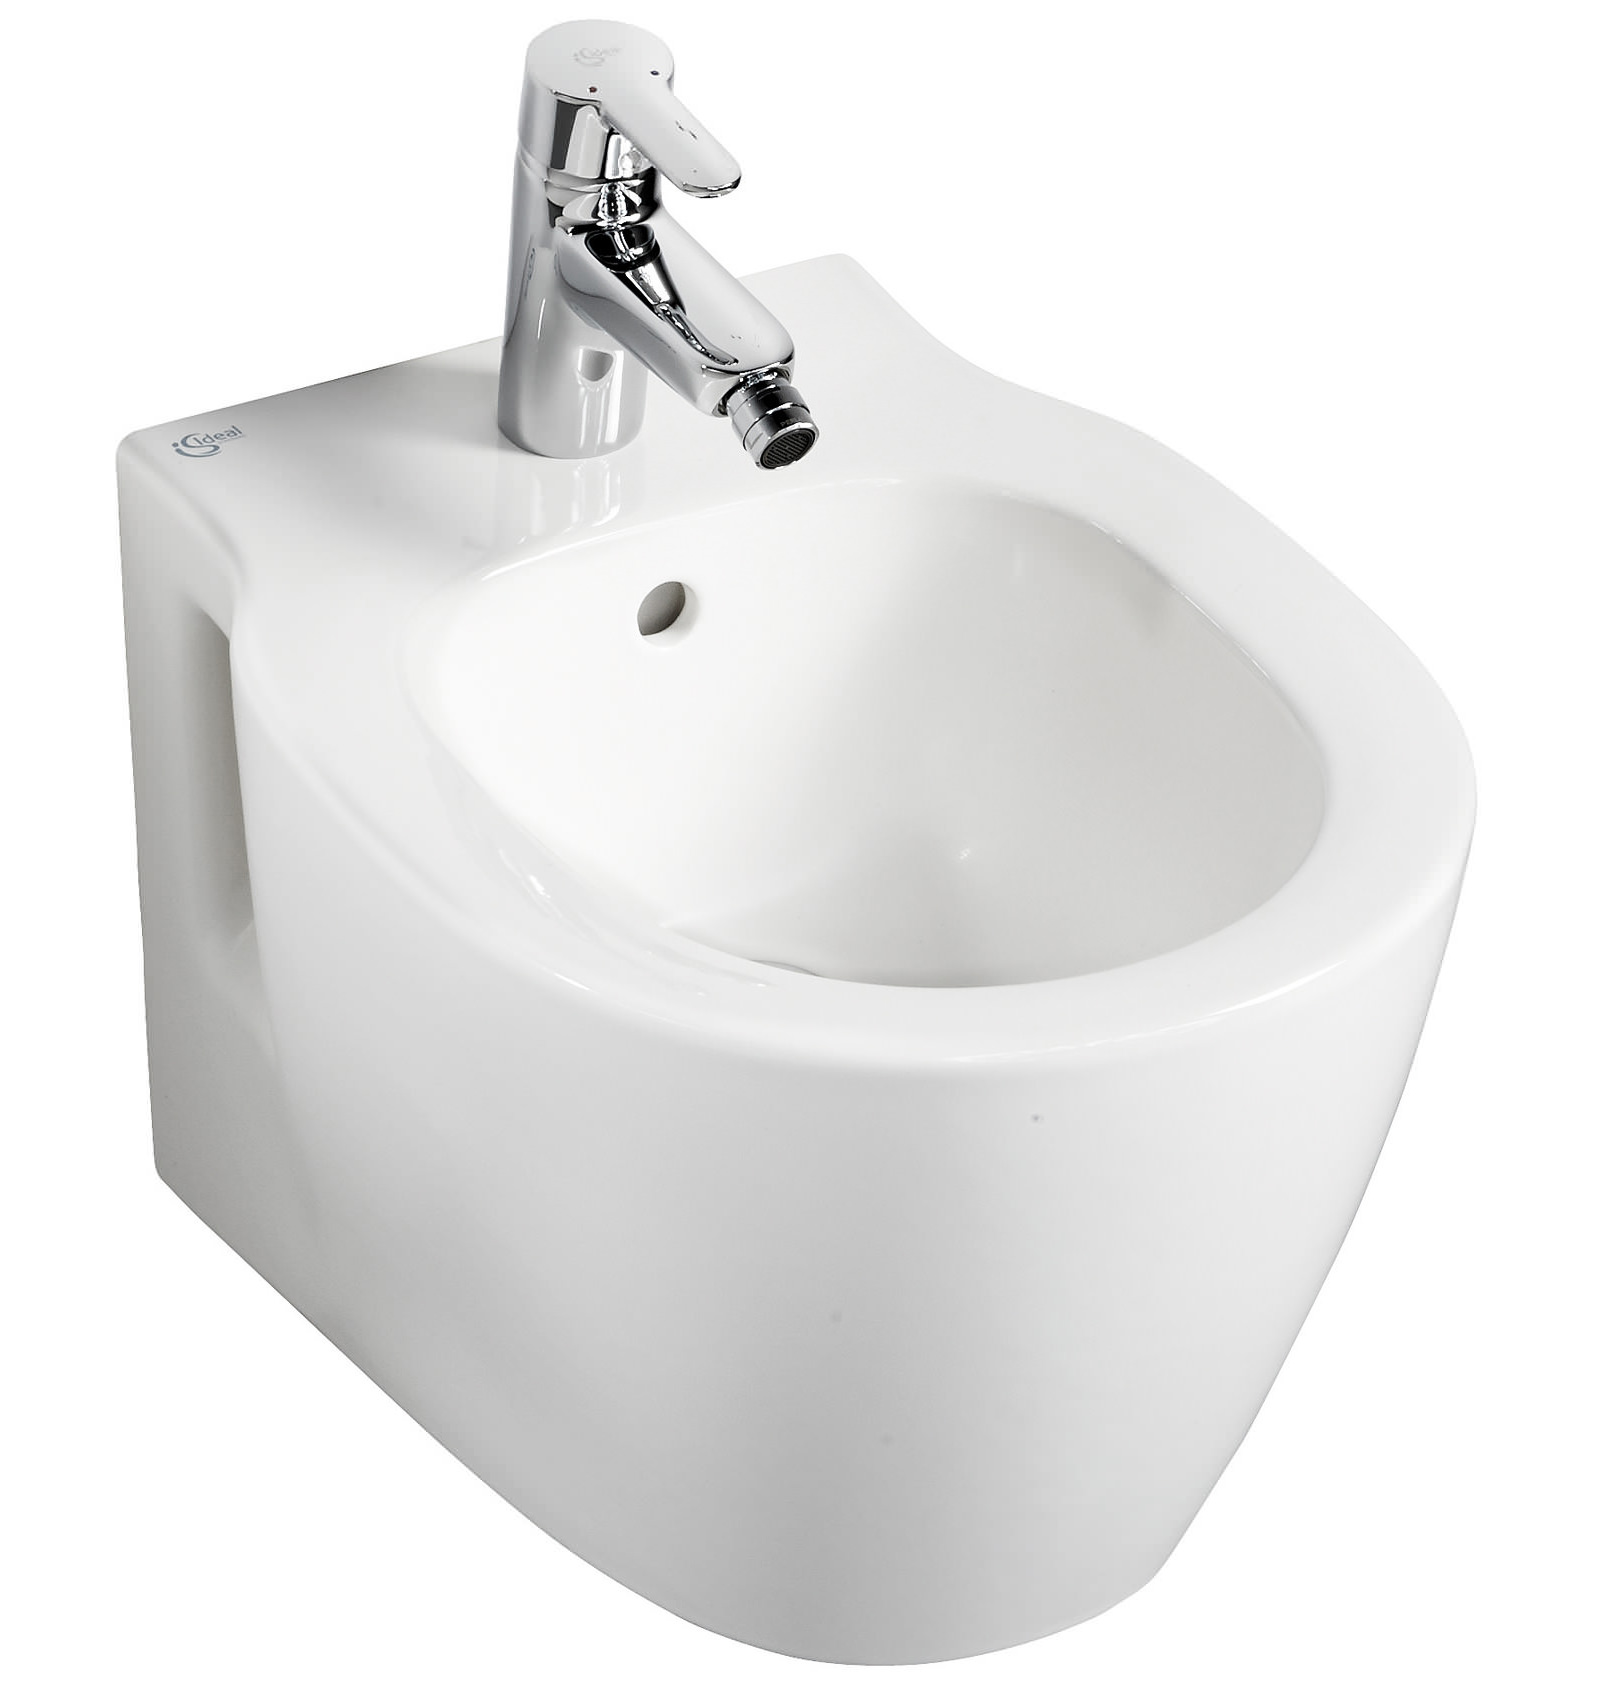 Ideal standard concept space compact wall mounted 1 th bidet - Small toilets for tight spaces concept ...